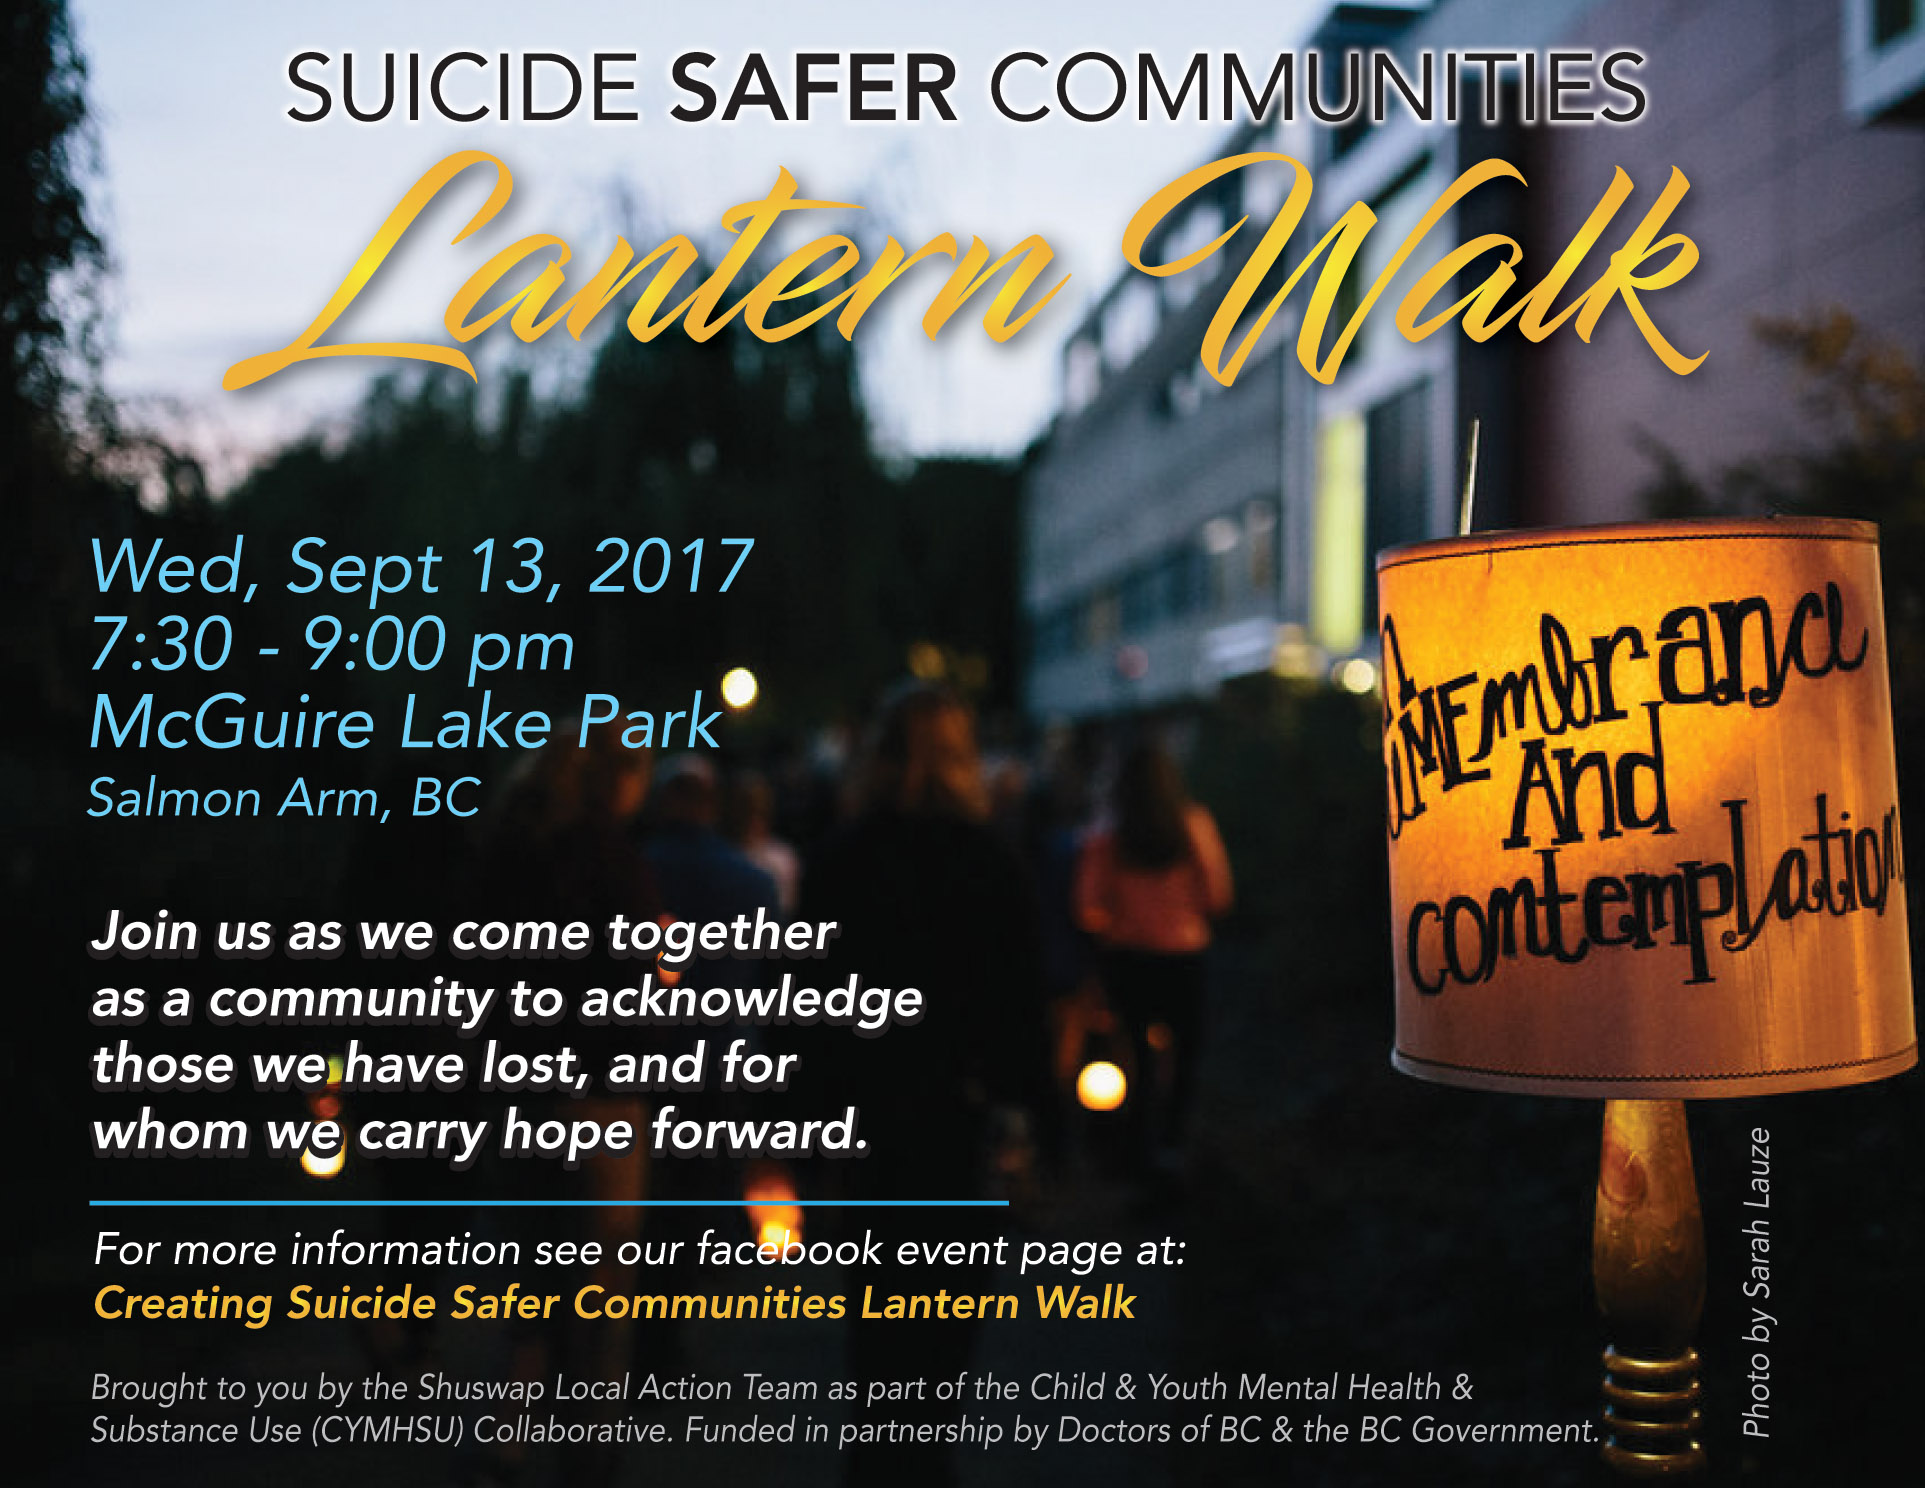 Suicide Safer Communities Lantern Walk